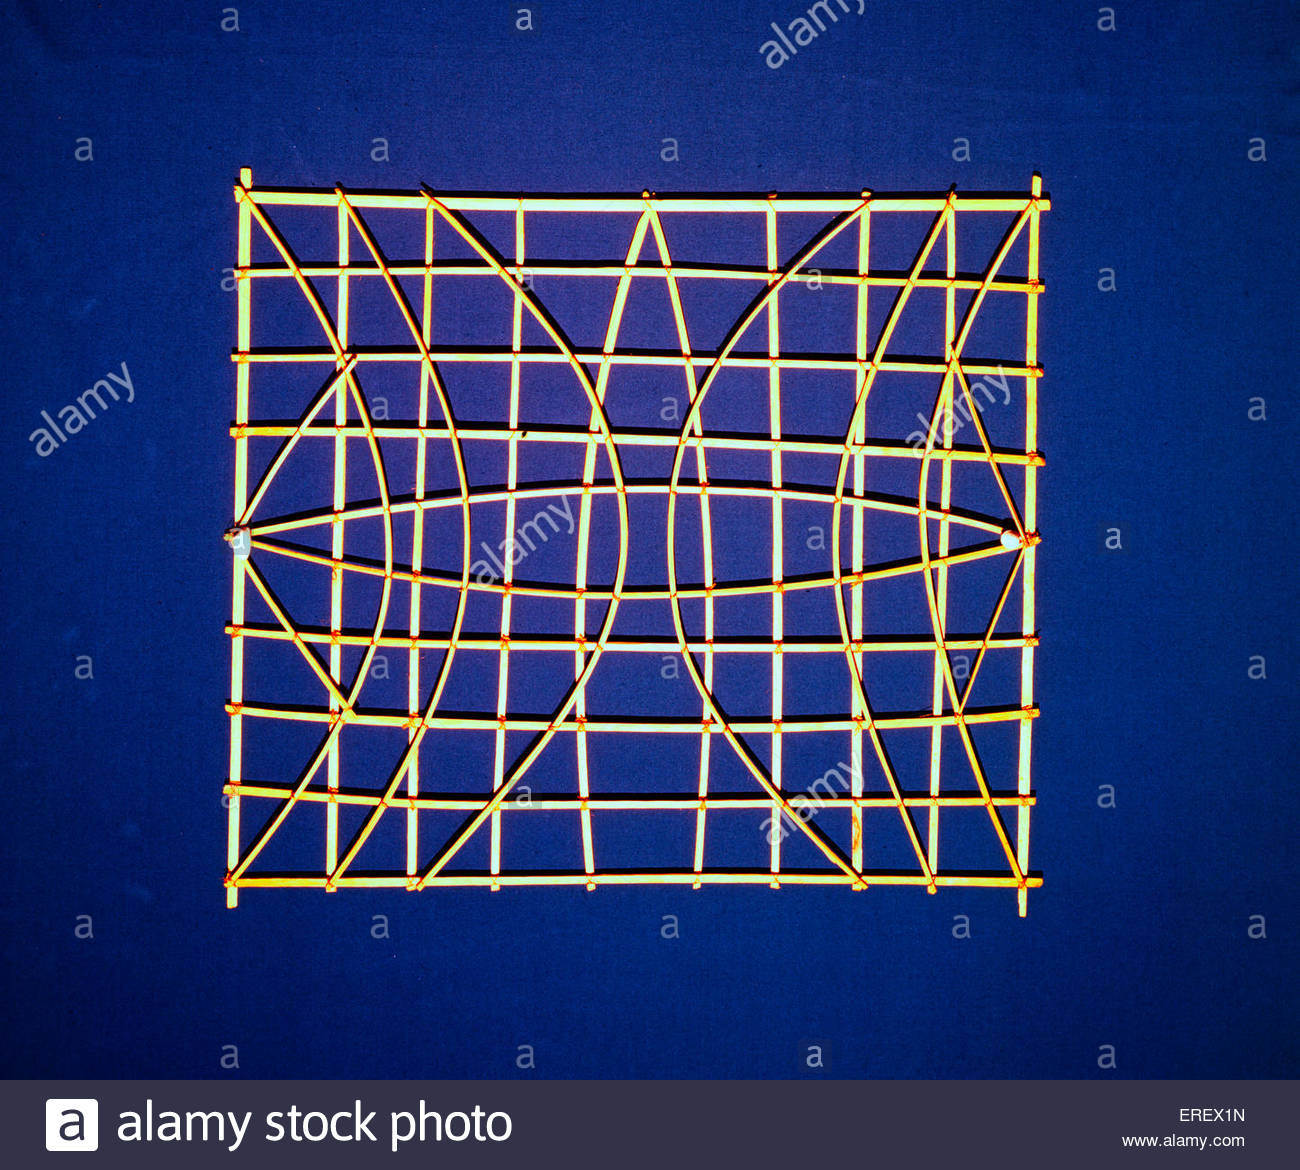 Polynesian Stick Chart  - navigation training device. Also known as a mattang. From the Marshall Islands, Micronesia. - Stock Image